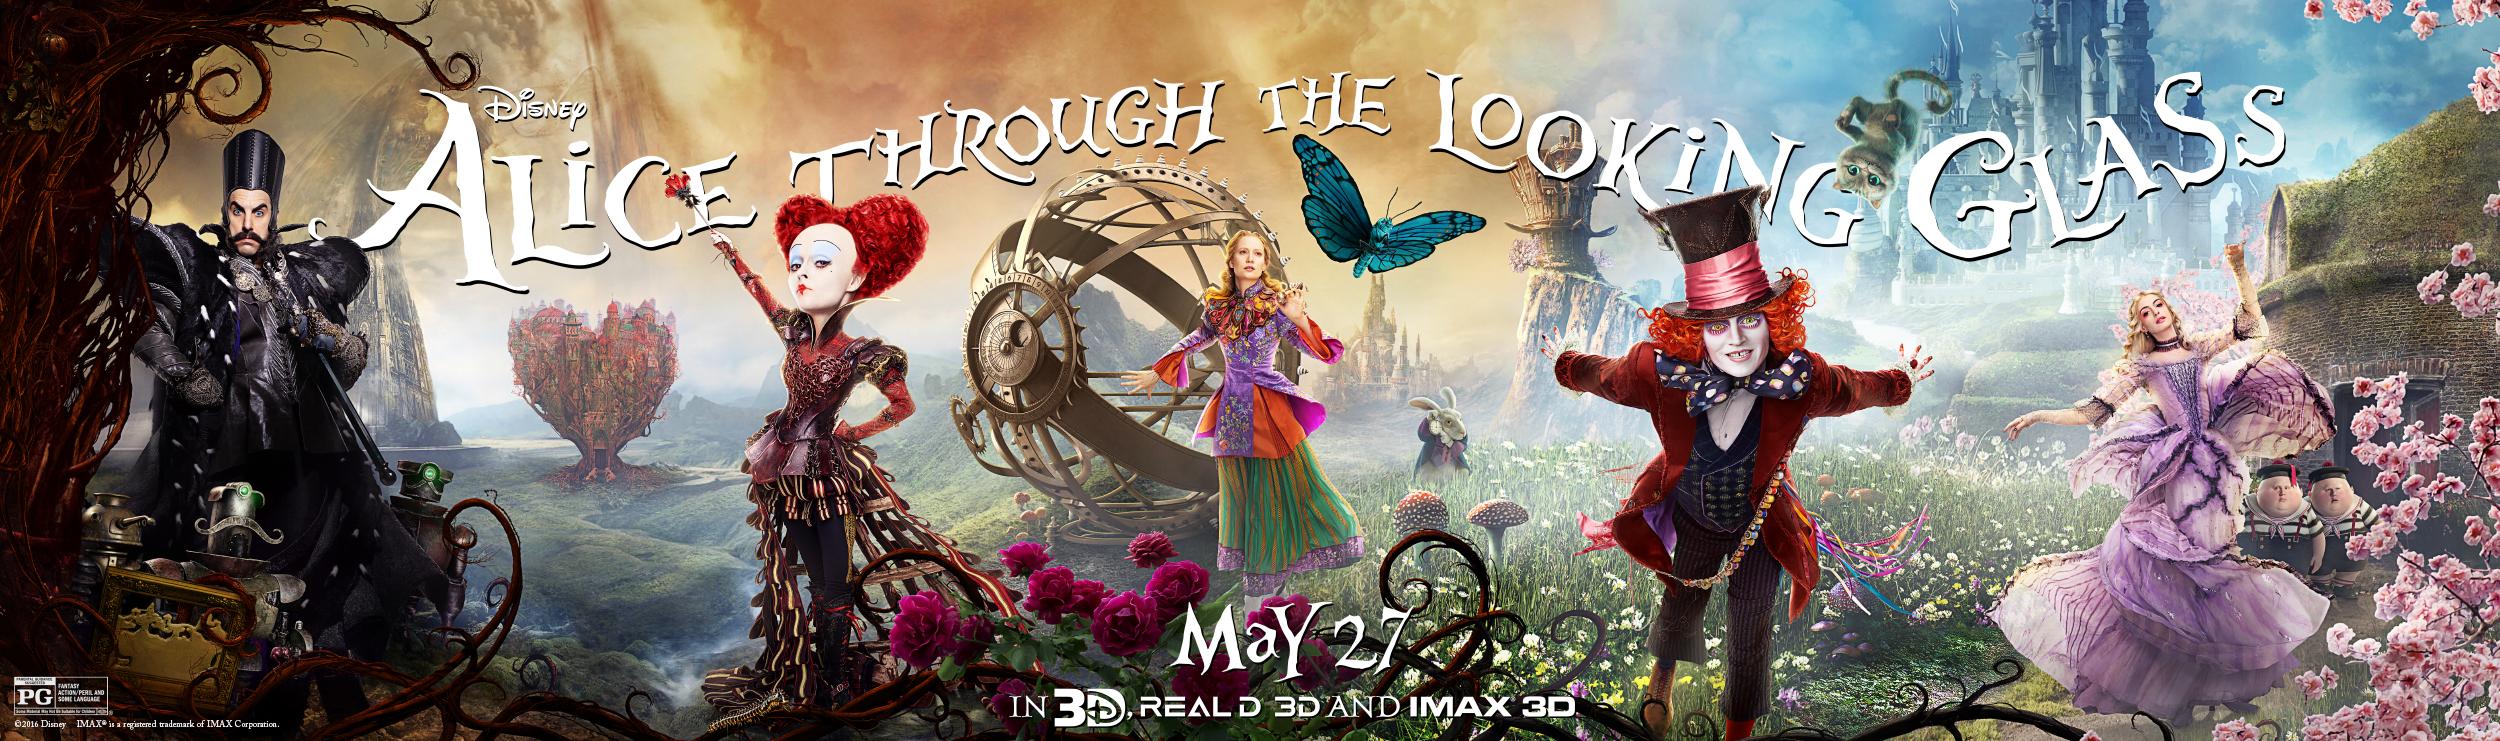 Movies Alice In Wonderland Through The Looking Glass